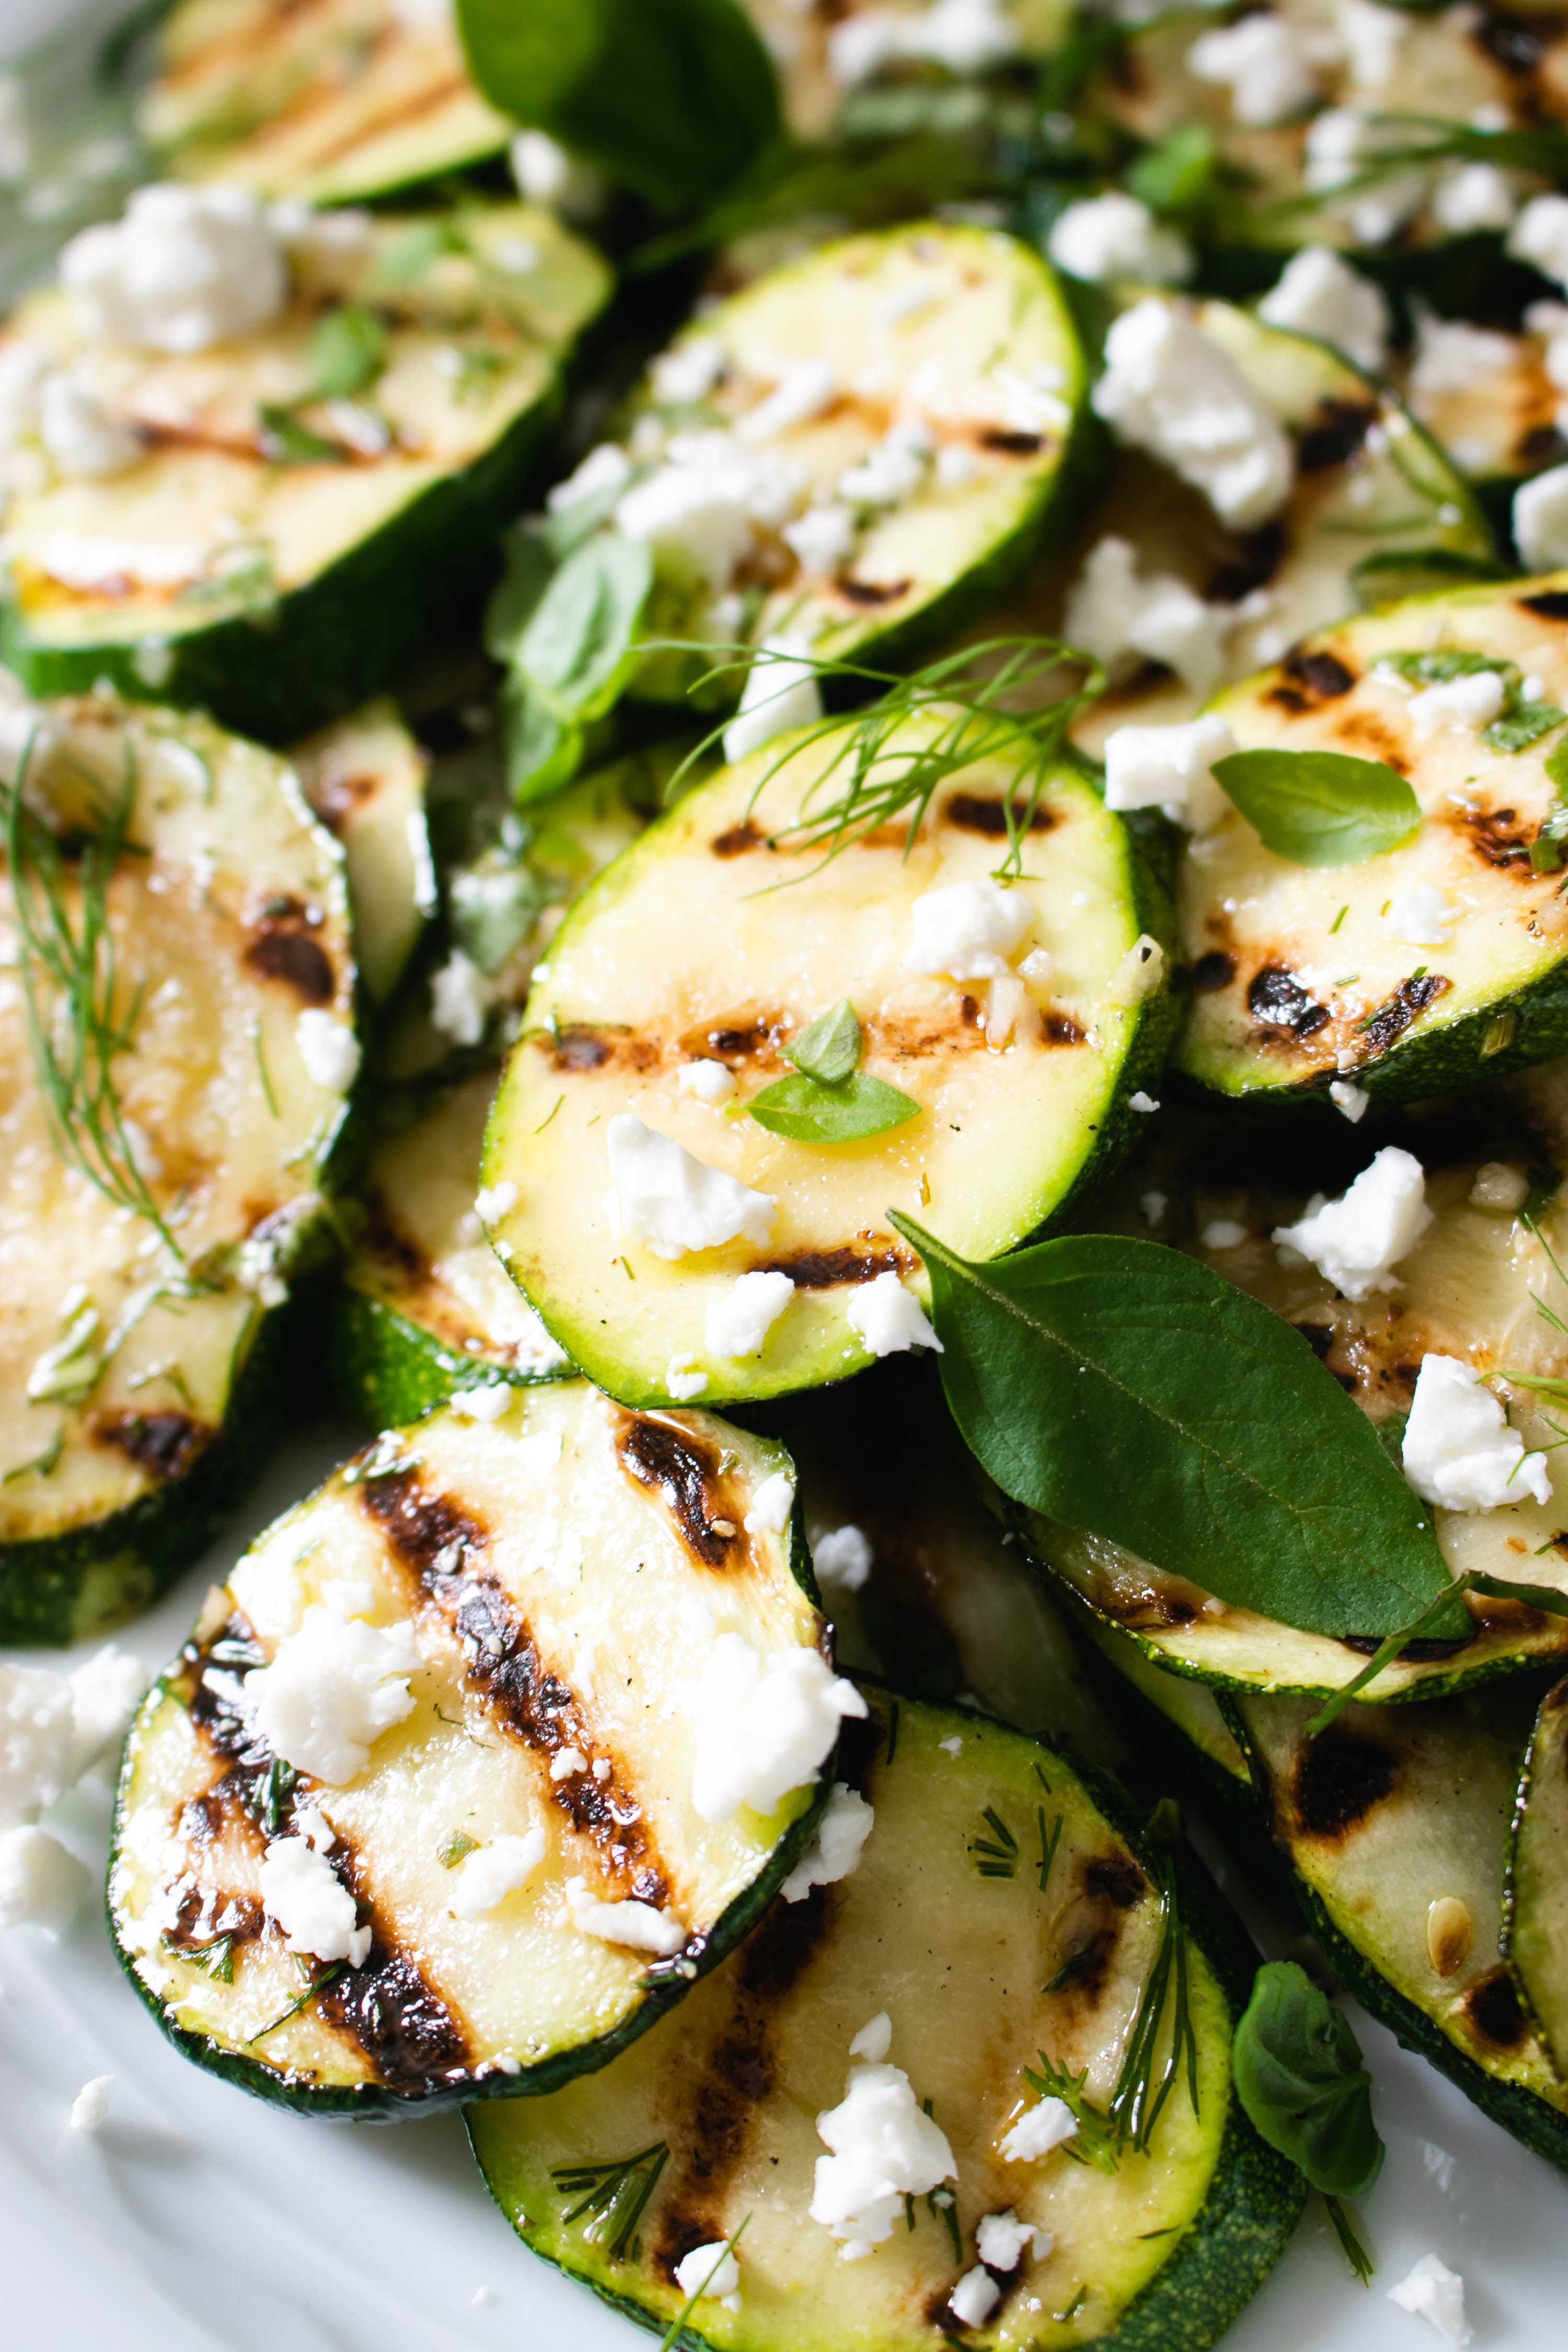 Grilled Zucchini with Lemon and Feta Cheese - The